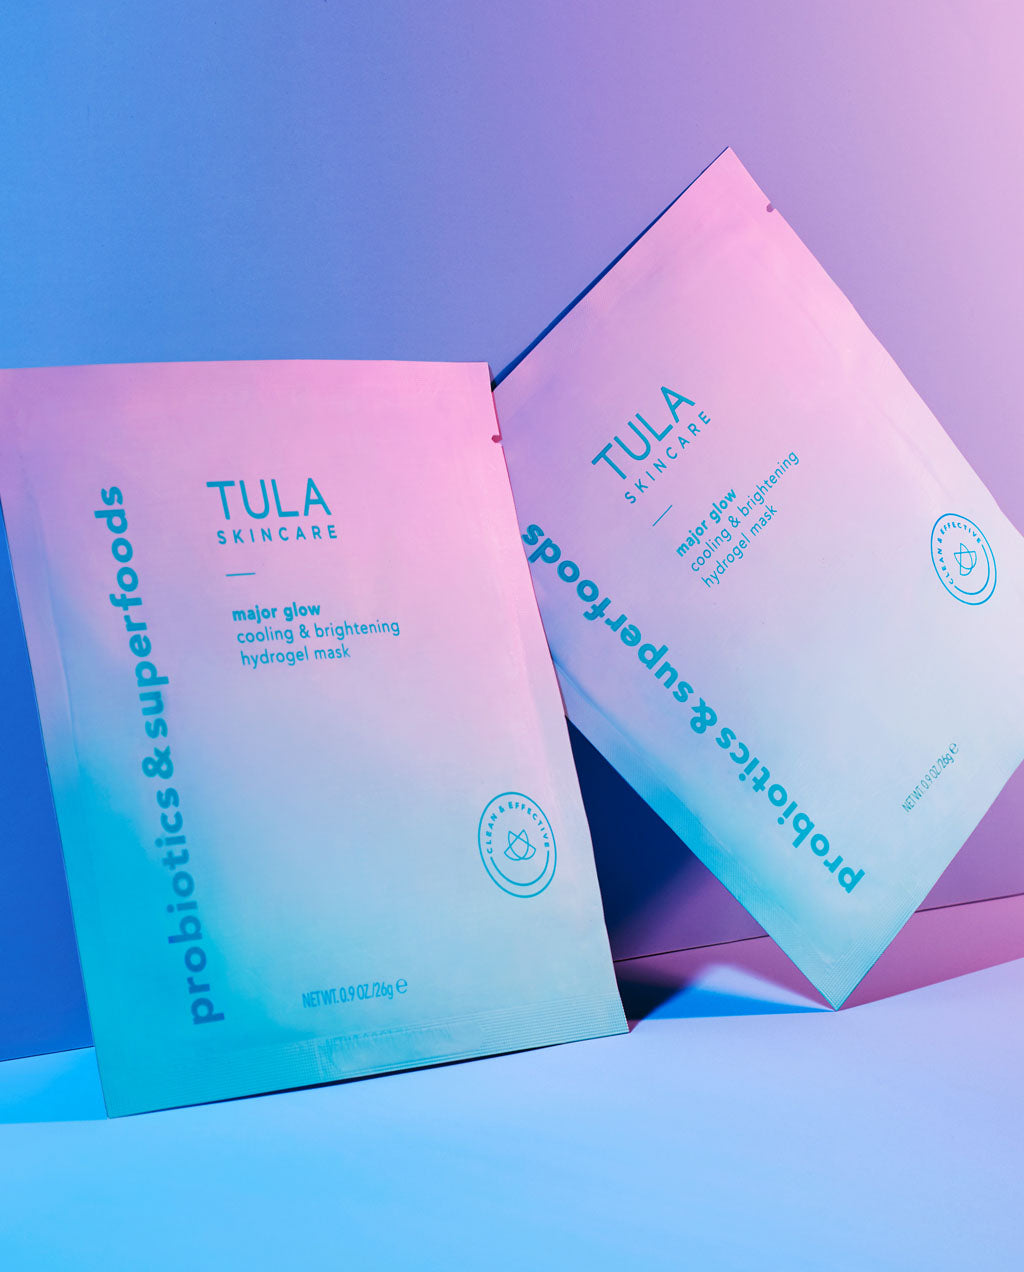 cooling & brightening hydrogel mask